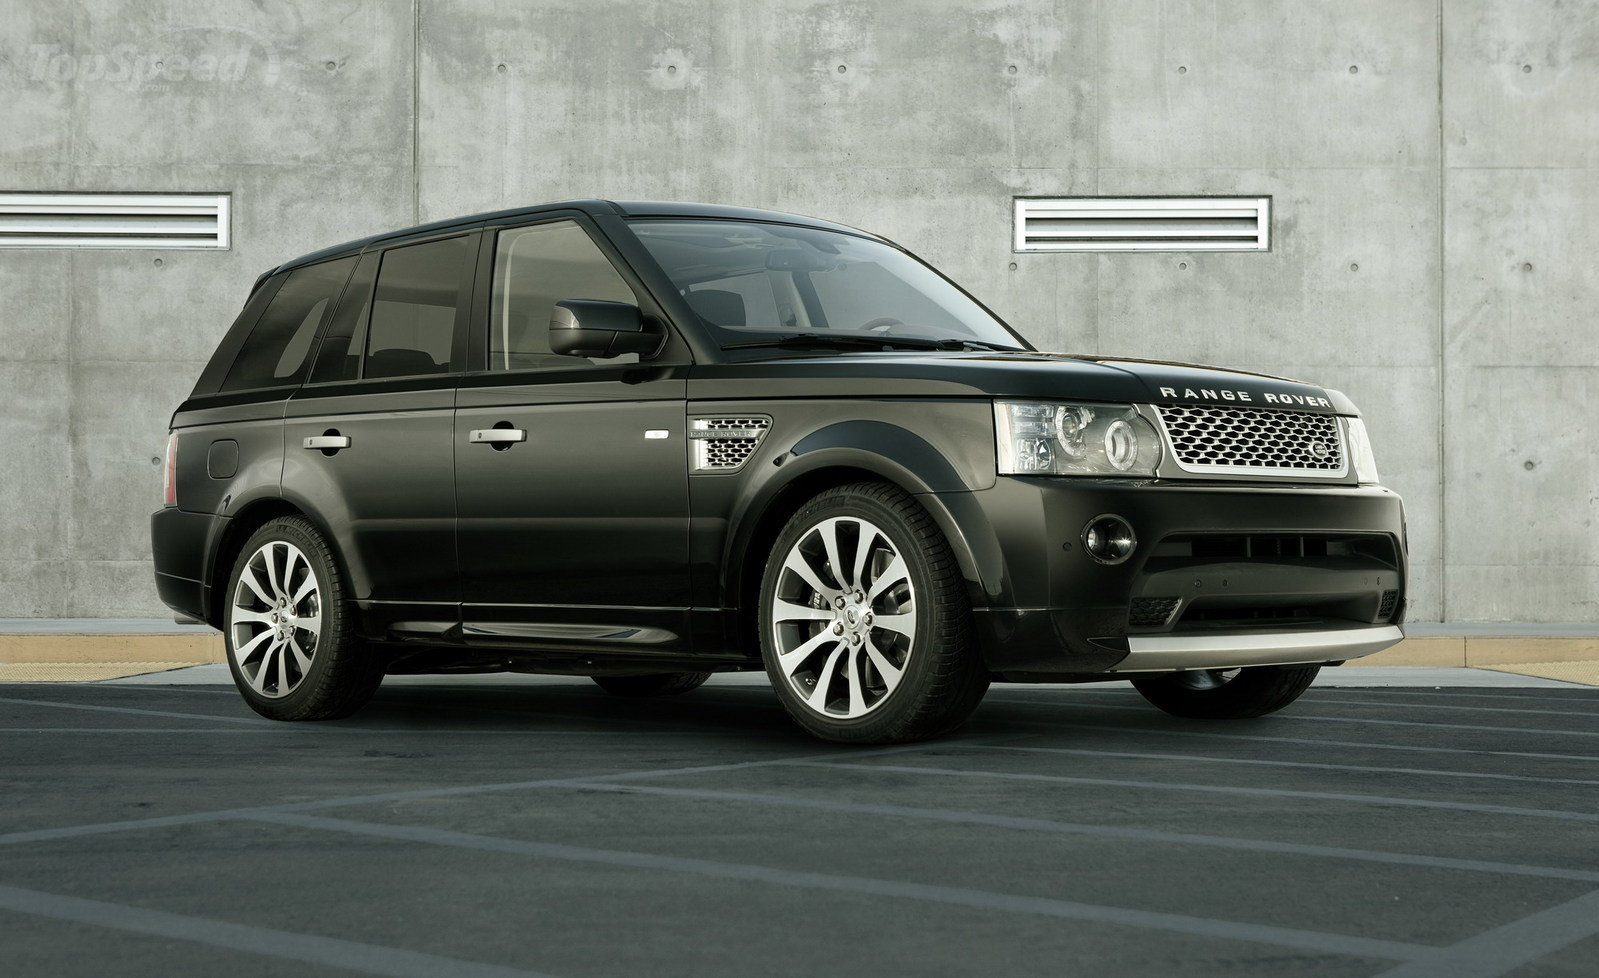 car 7 land rover range rover. Black Bedroom Furniture Sets. Home Design Ideas